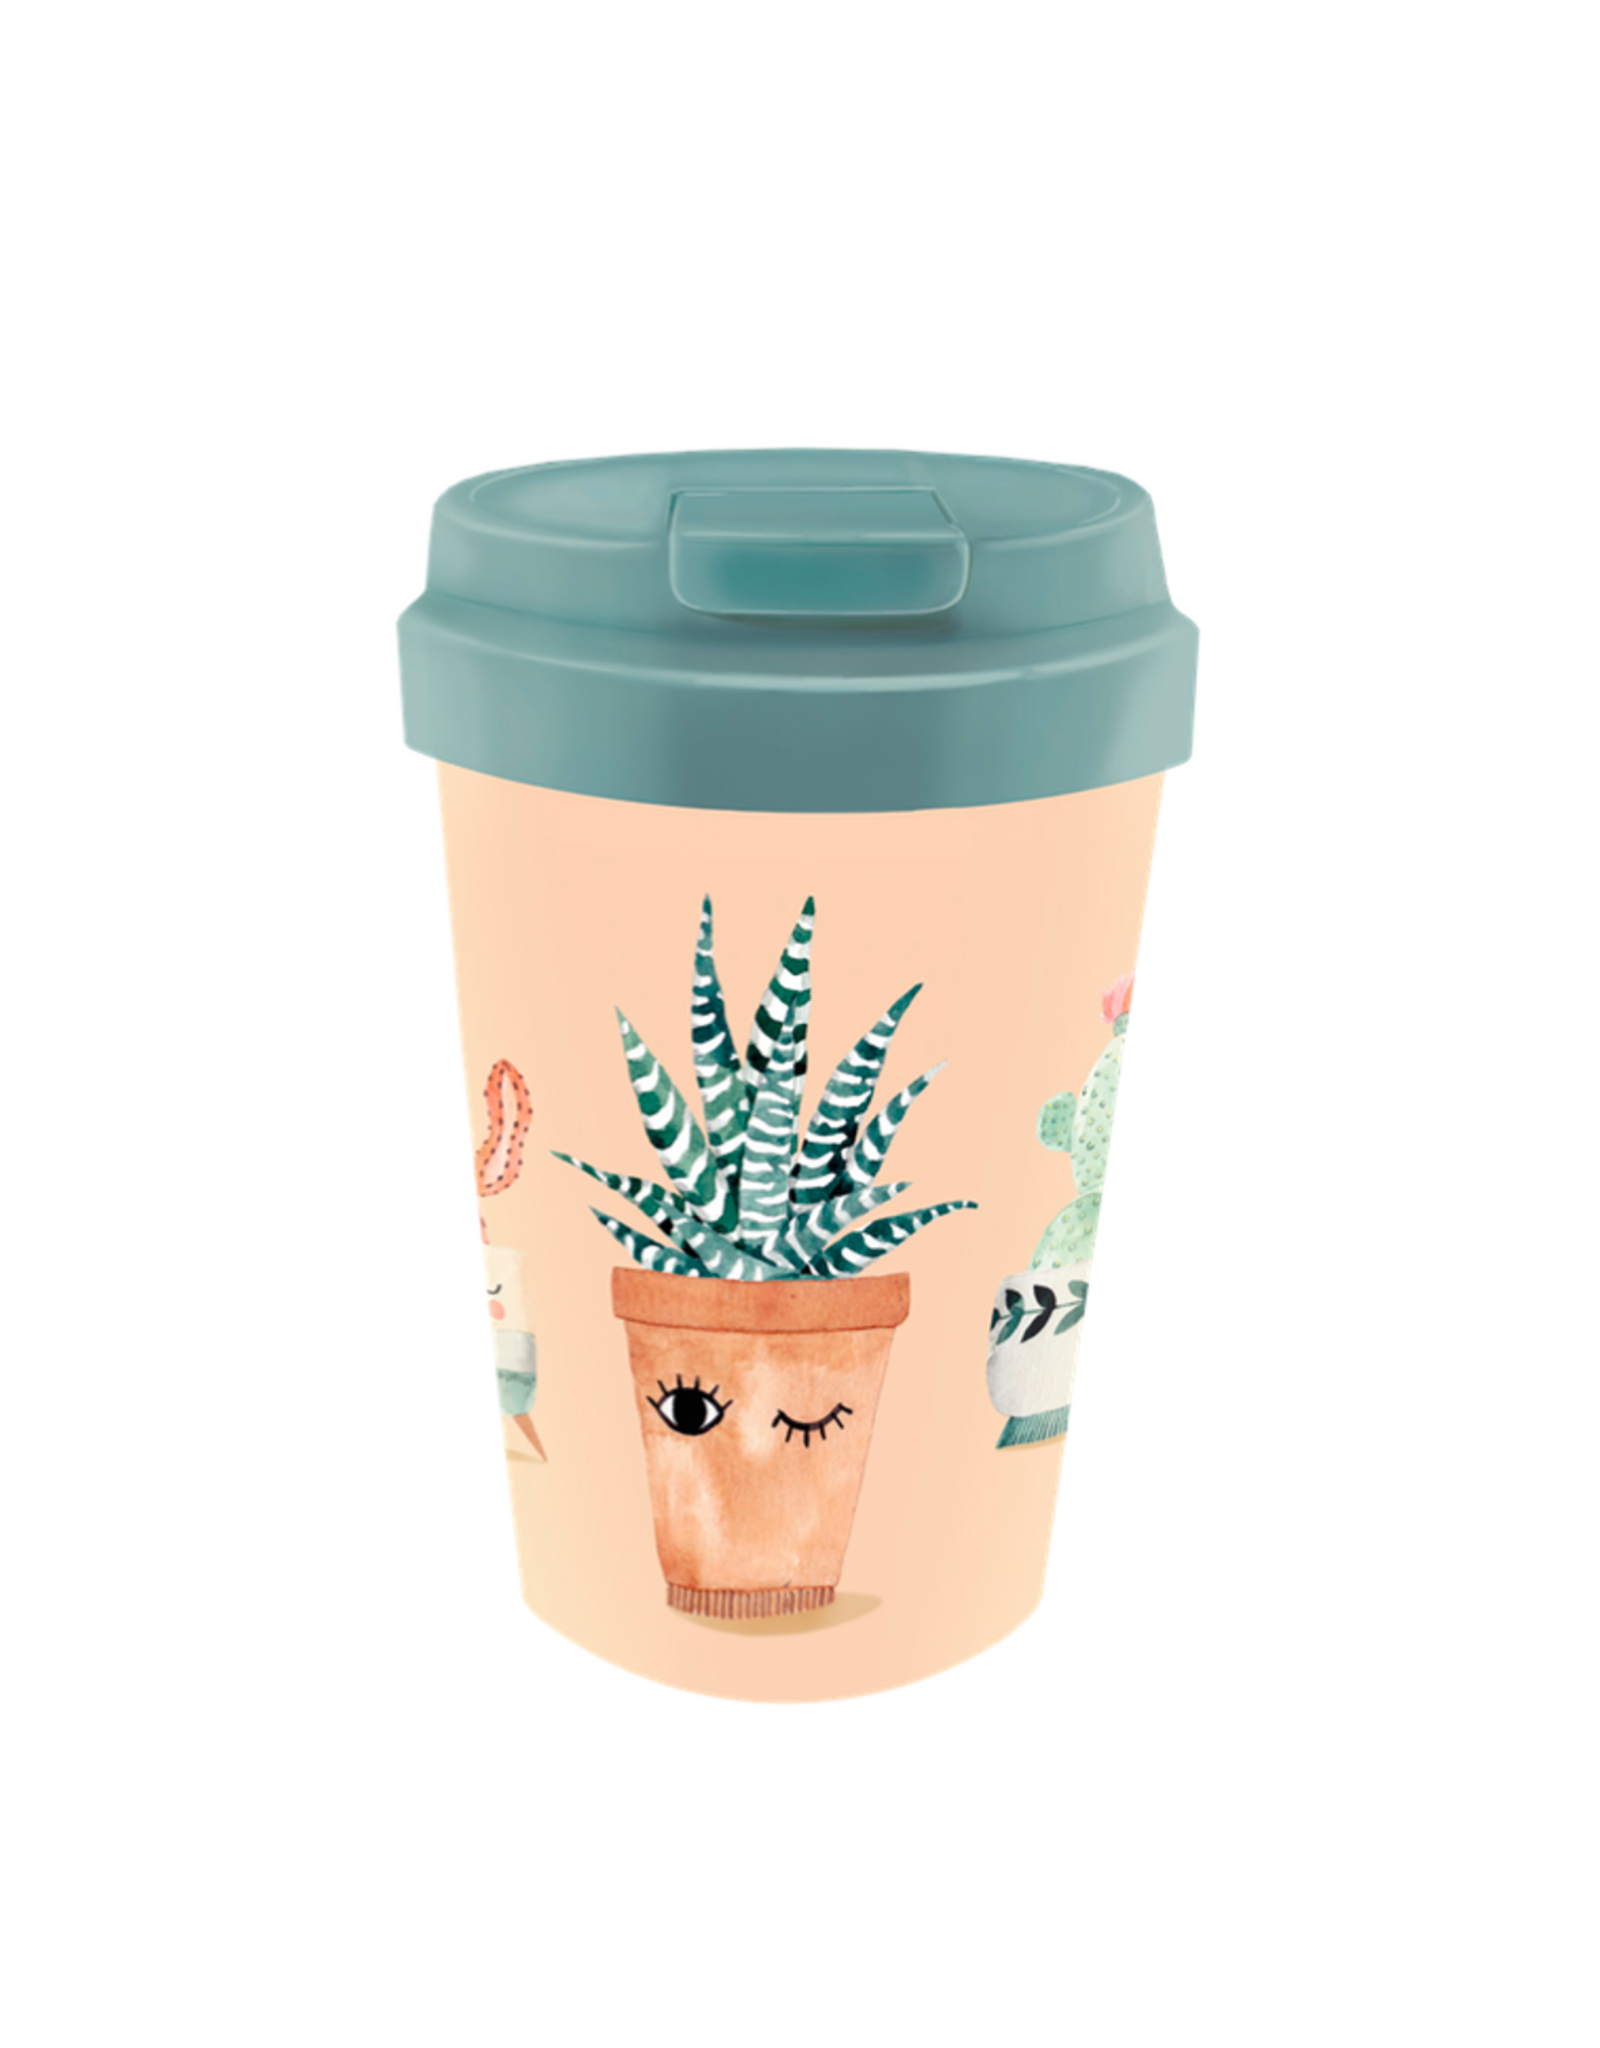 easy cup with plant design